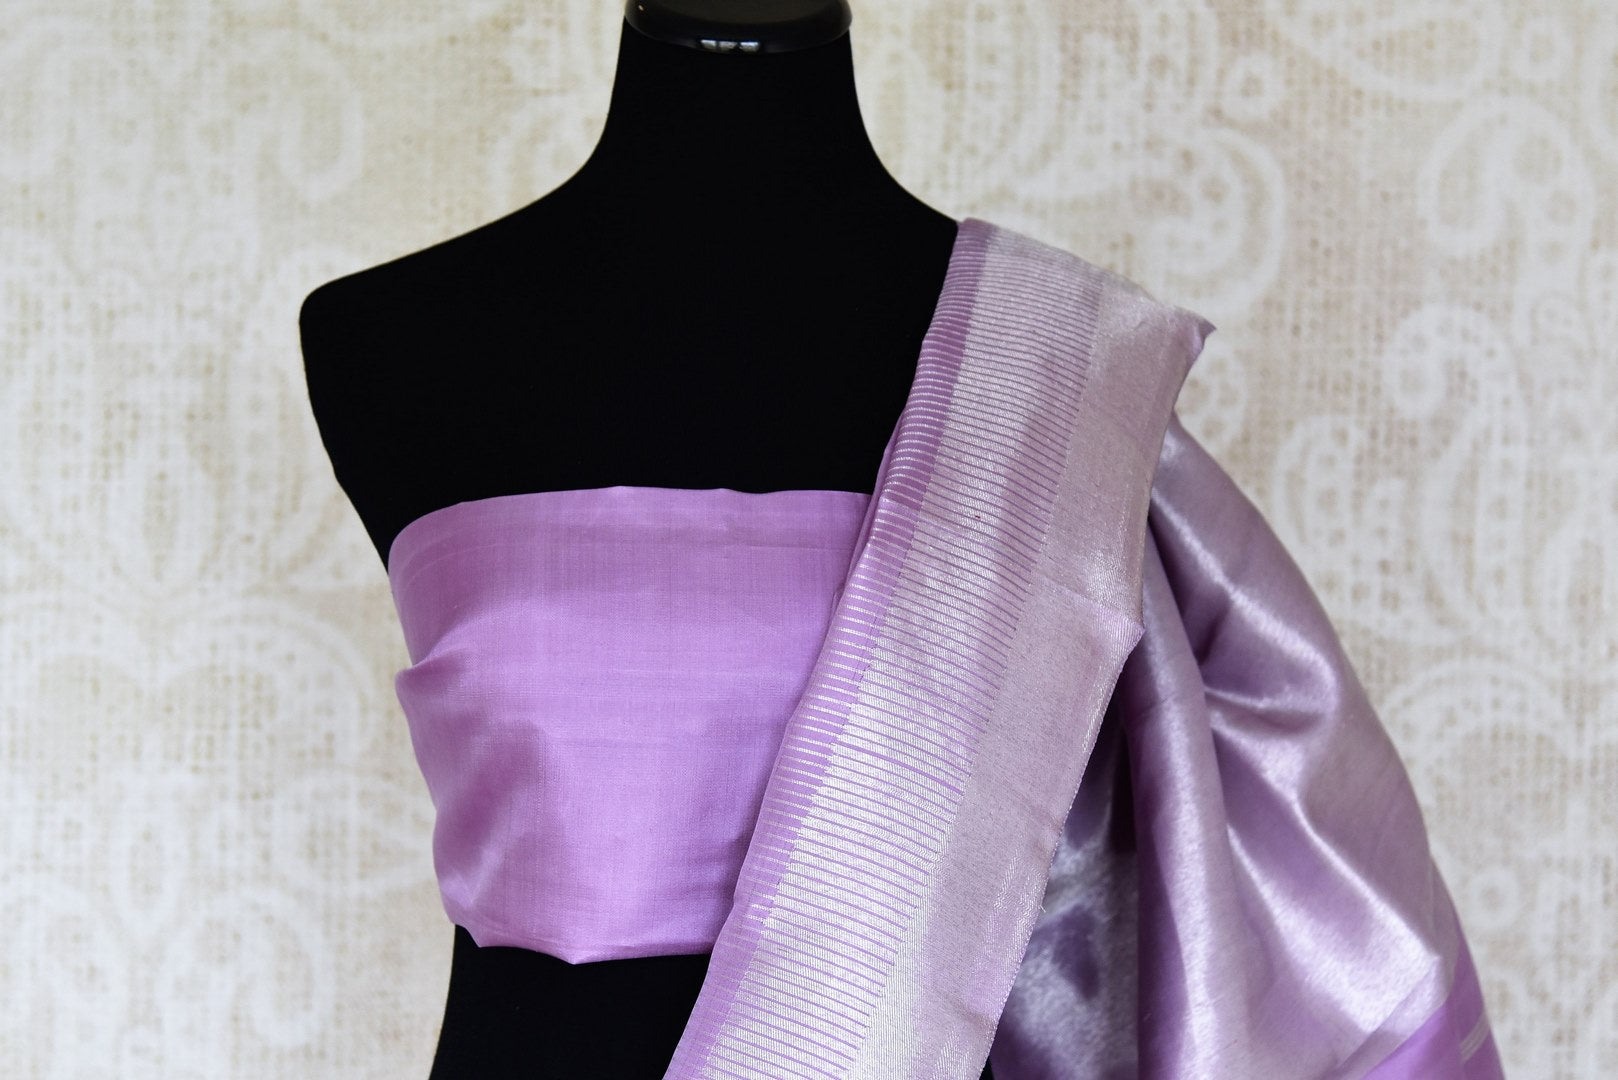 Shop lavender Kanjeevaram sari with silver zari border online in USA. Shop more such exquisite Indian sarees in USA from Pure Elegance. Get floored by a range of designer sarees, Kanchipuram silk saris at our Indian fashion store in USA.-blouse pallu